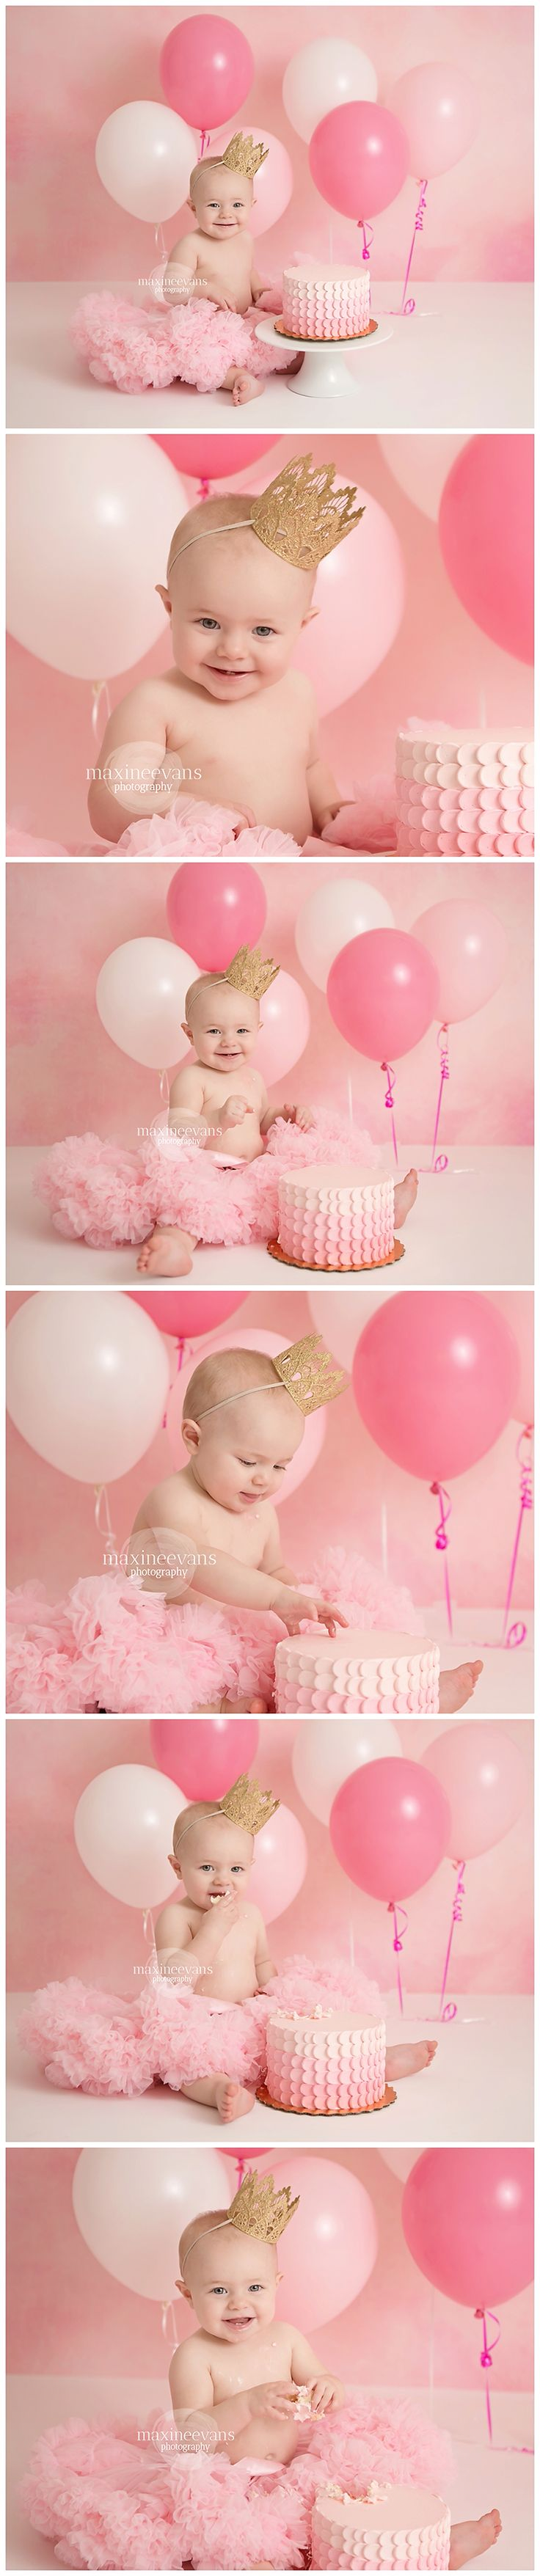 Los Angeles Newborn Photographer - Maxine Evans Photography  Cake Smash - One Year Old Pictures www.maxineevansphotography.com  Los Angeles   Thousand Oaks   Woodland Hills   West LA   Agoura Hills   Studio City #losangelesnewbornbaby #losangelesnewborn #losangelesnewbornphotographer